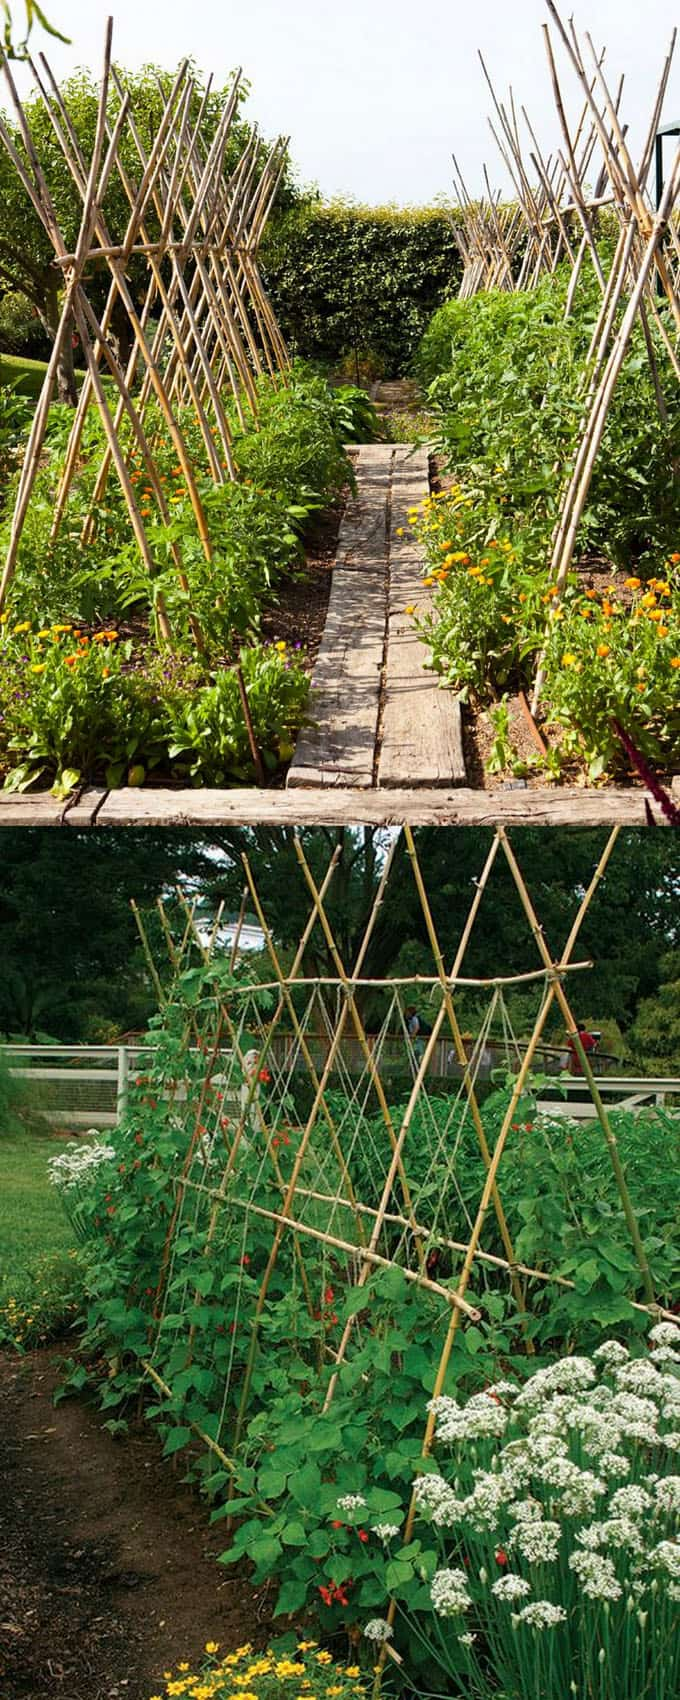 Bamboo Poles Are Strong Yet Light Weight, Which Makes Them Easy To Work  With. This Type Of Garden Trellis Is Great For Growing Tomatoes, Beans,  Cucumbers, ...